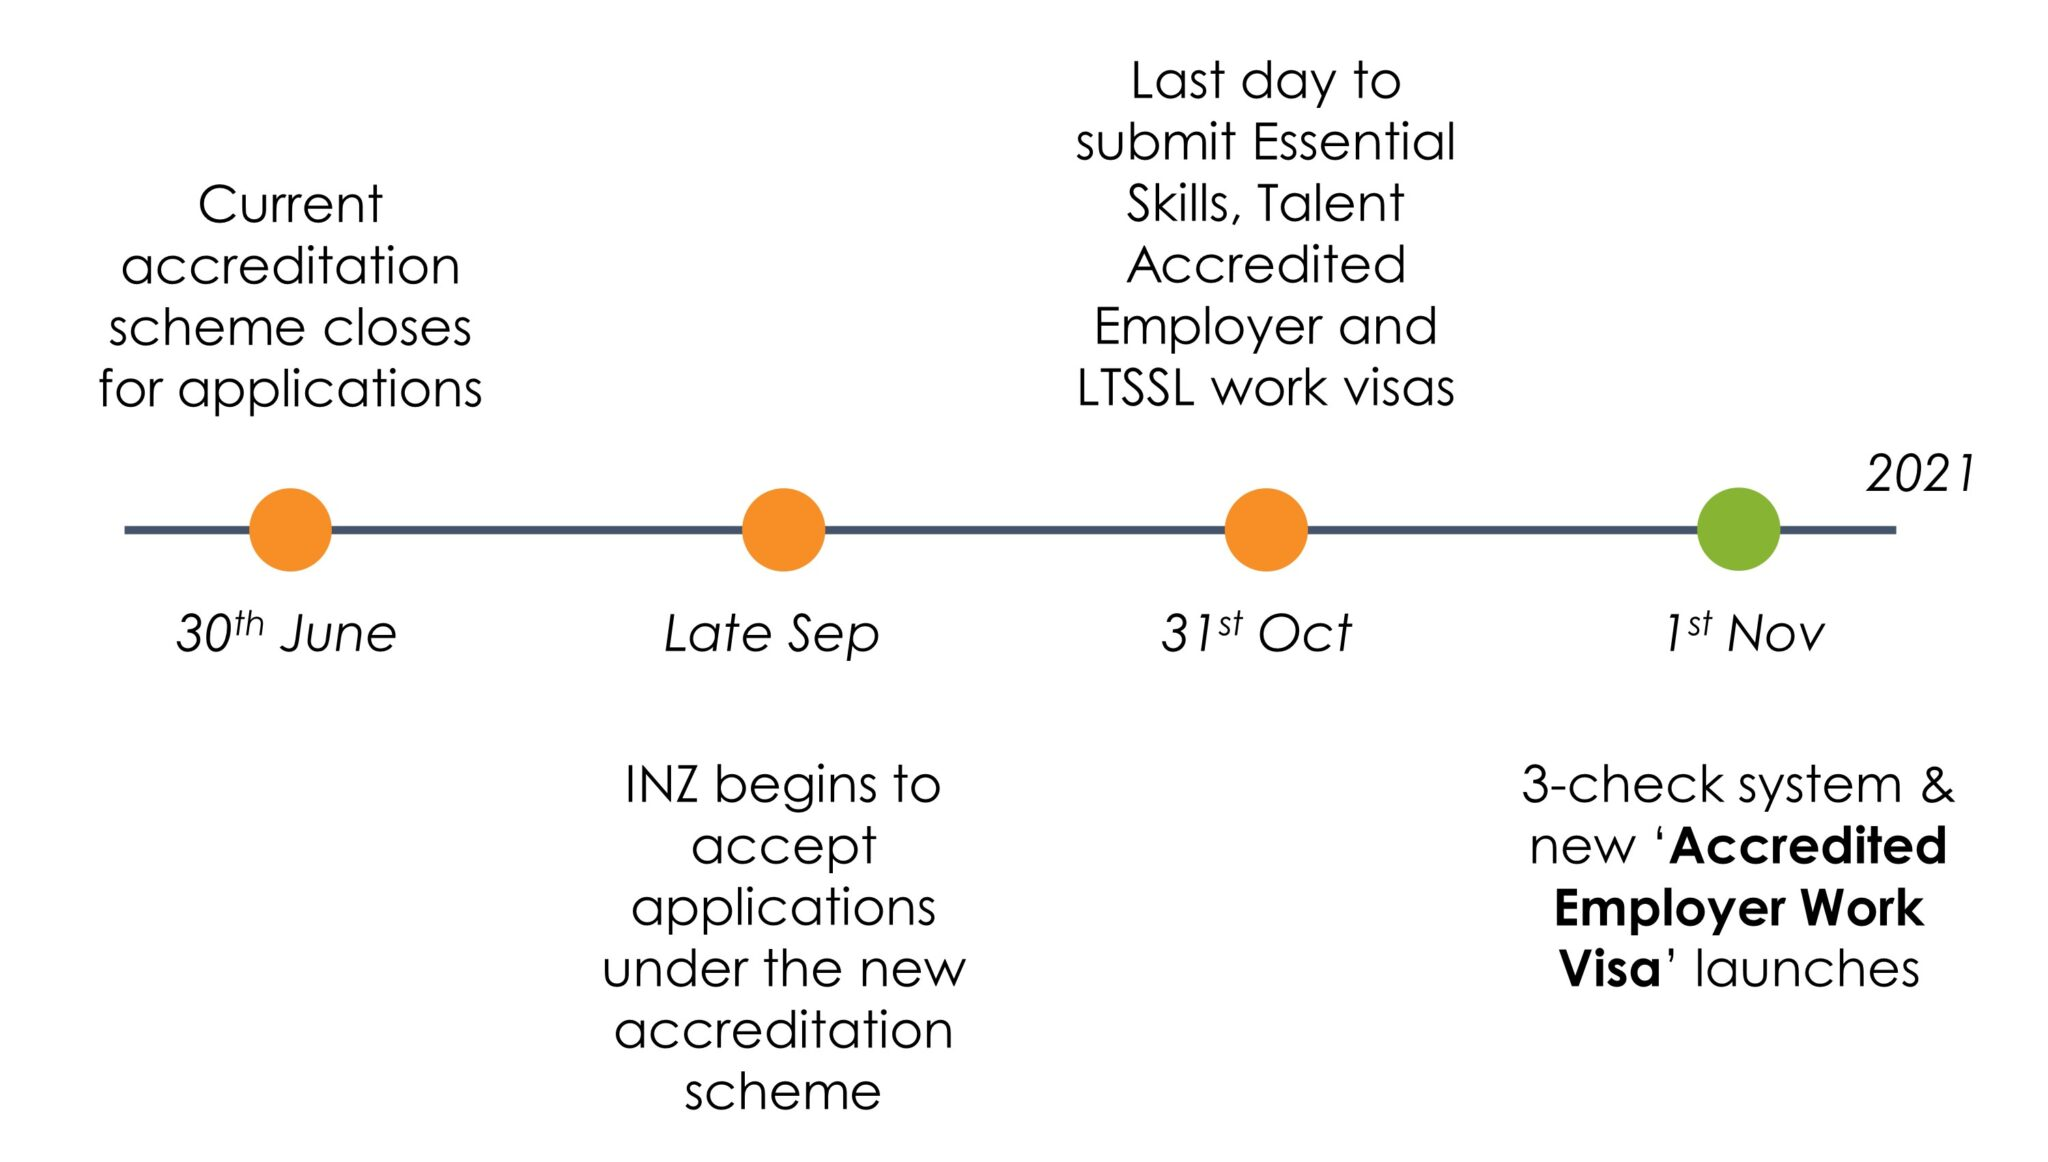 Critical timeline for employers